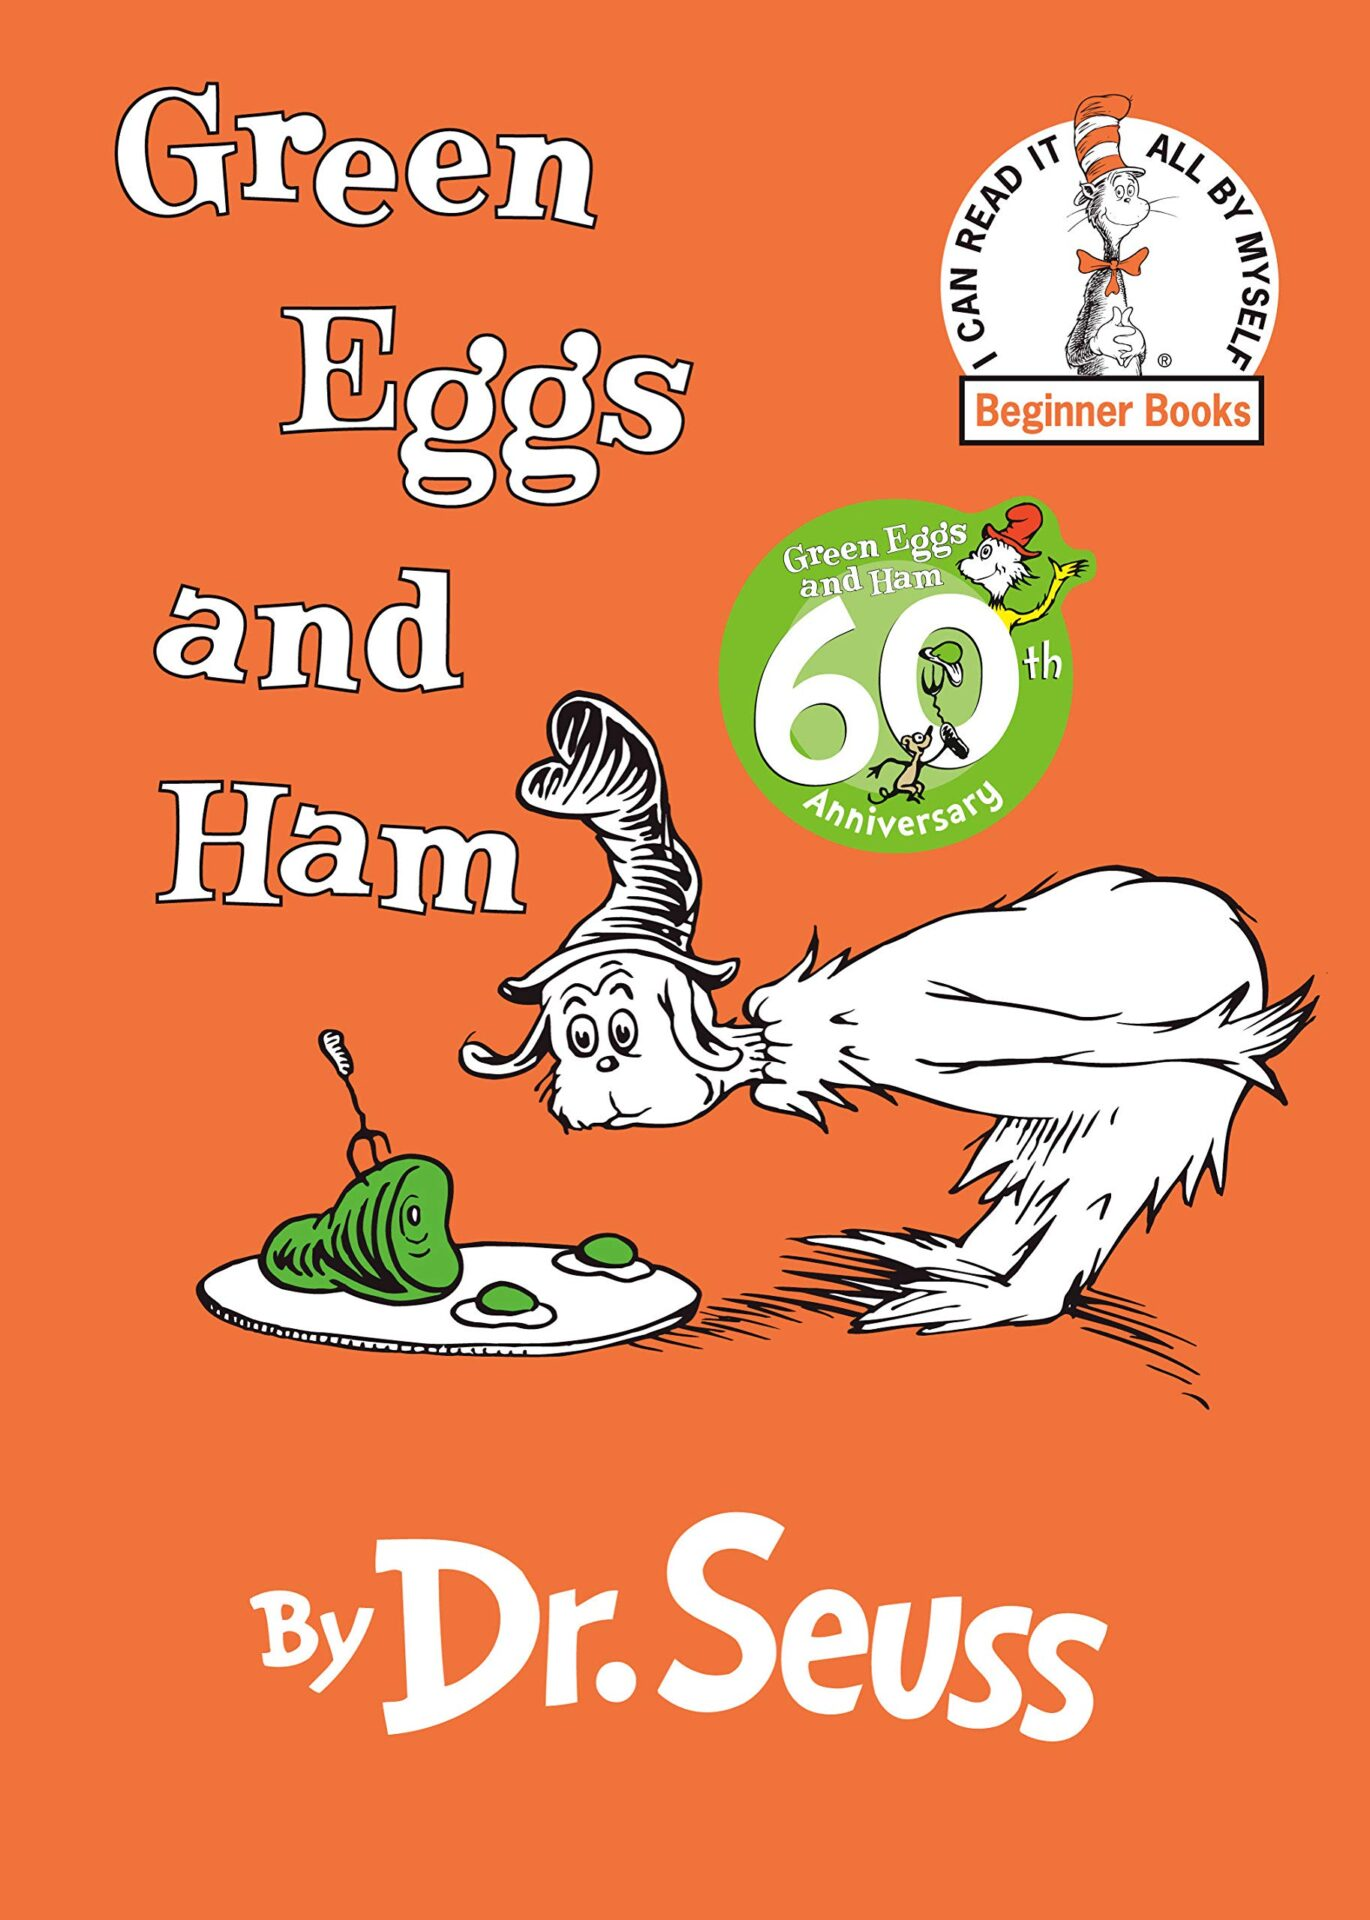 Green Eggs and Ham by Dr. Seuss book for 3 year old kids